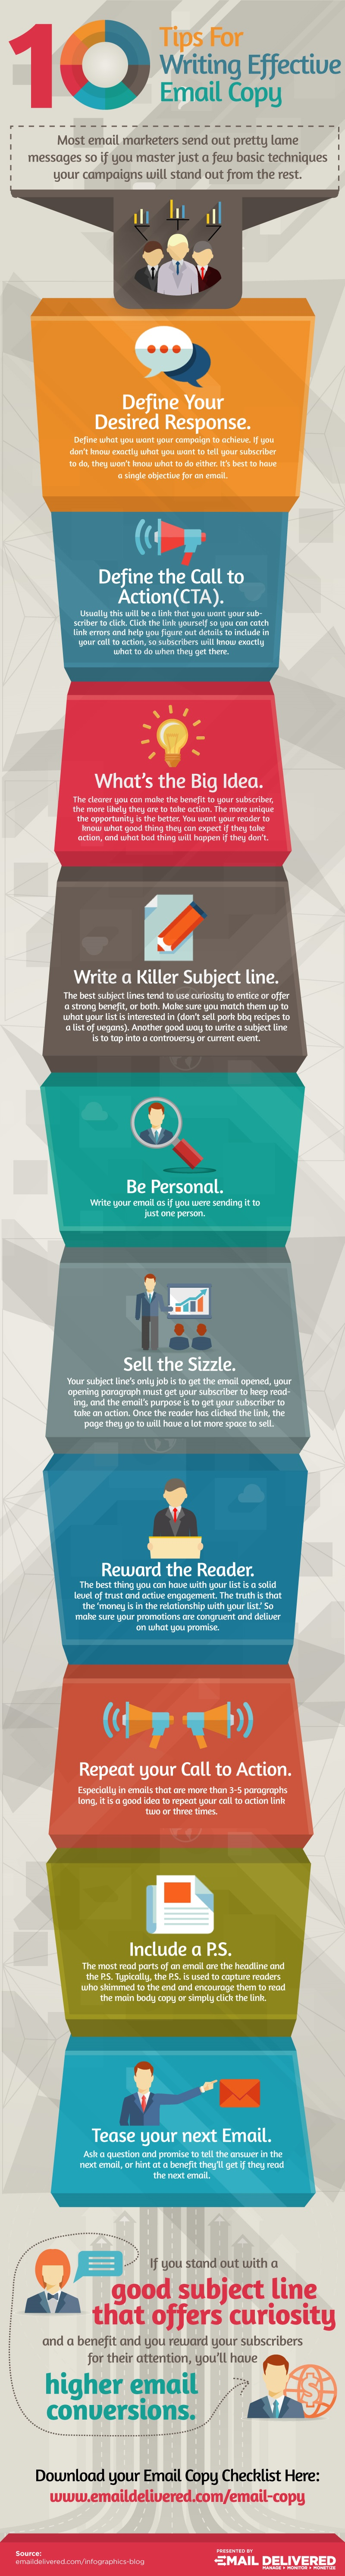 10 Tips for Writing Effective Email Copy-Infographic